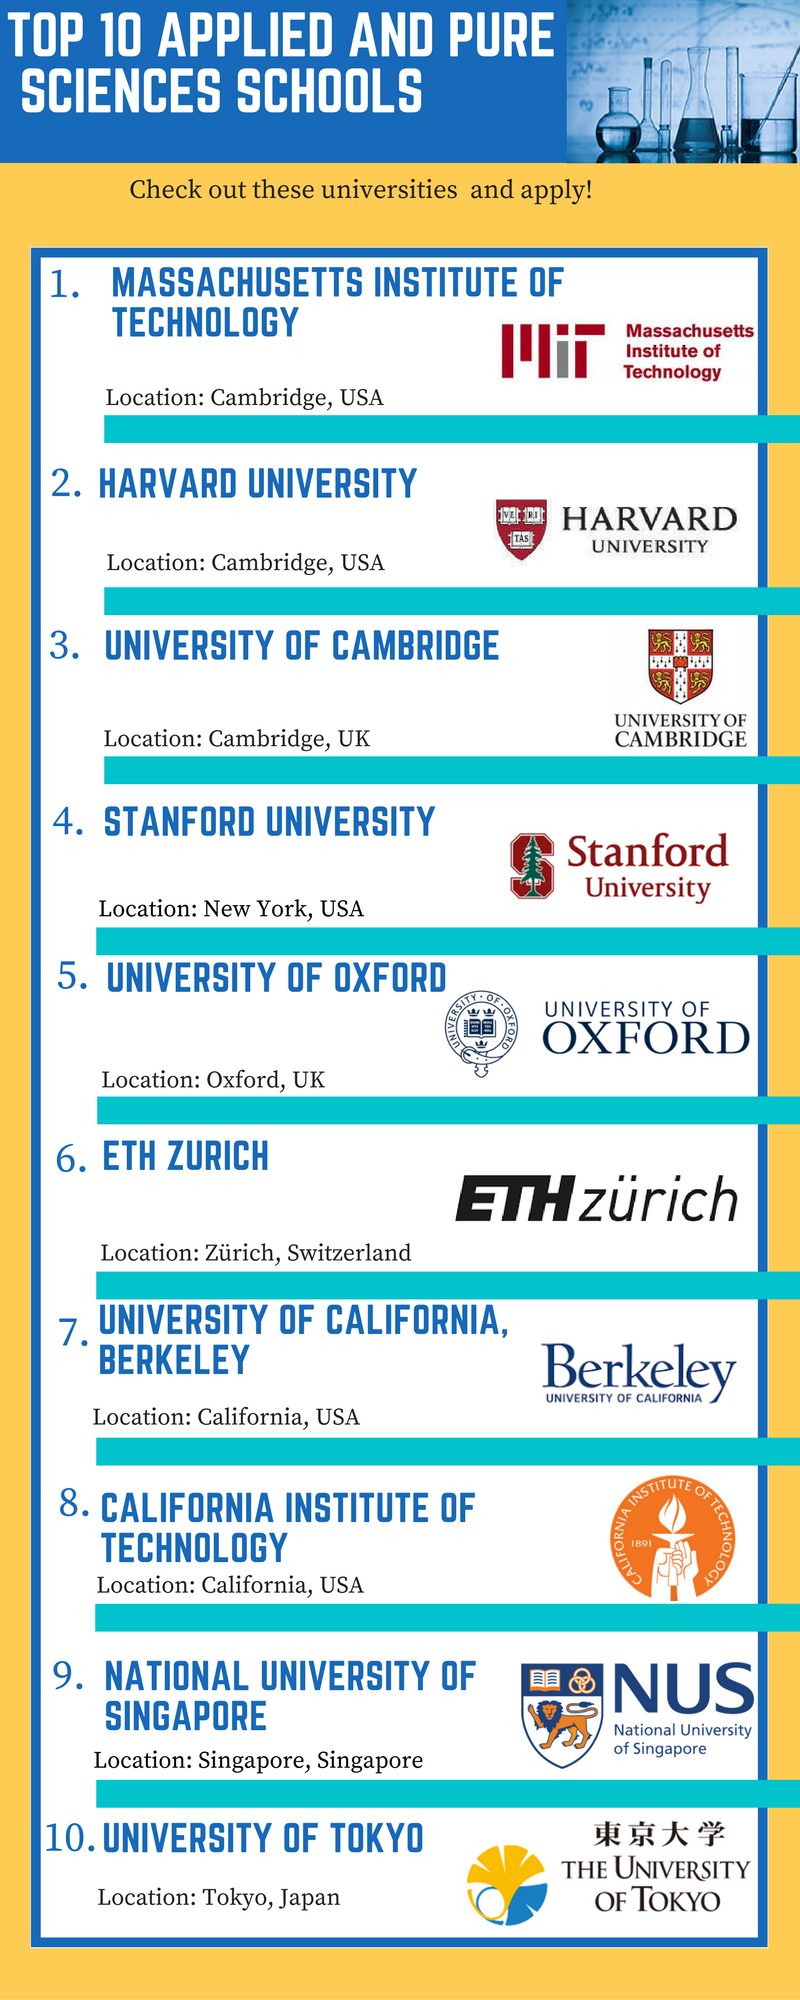 Top 10 applied and pure sciences schools